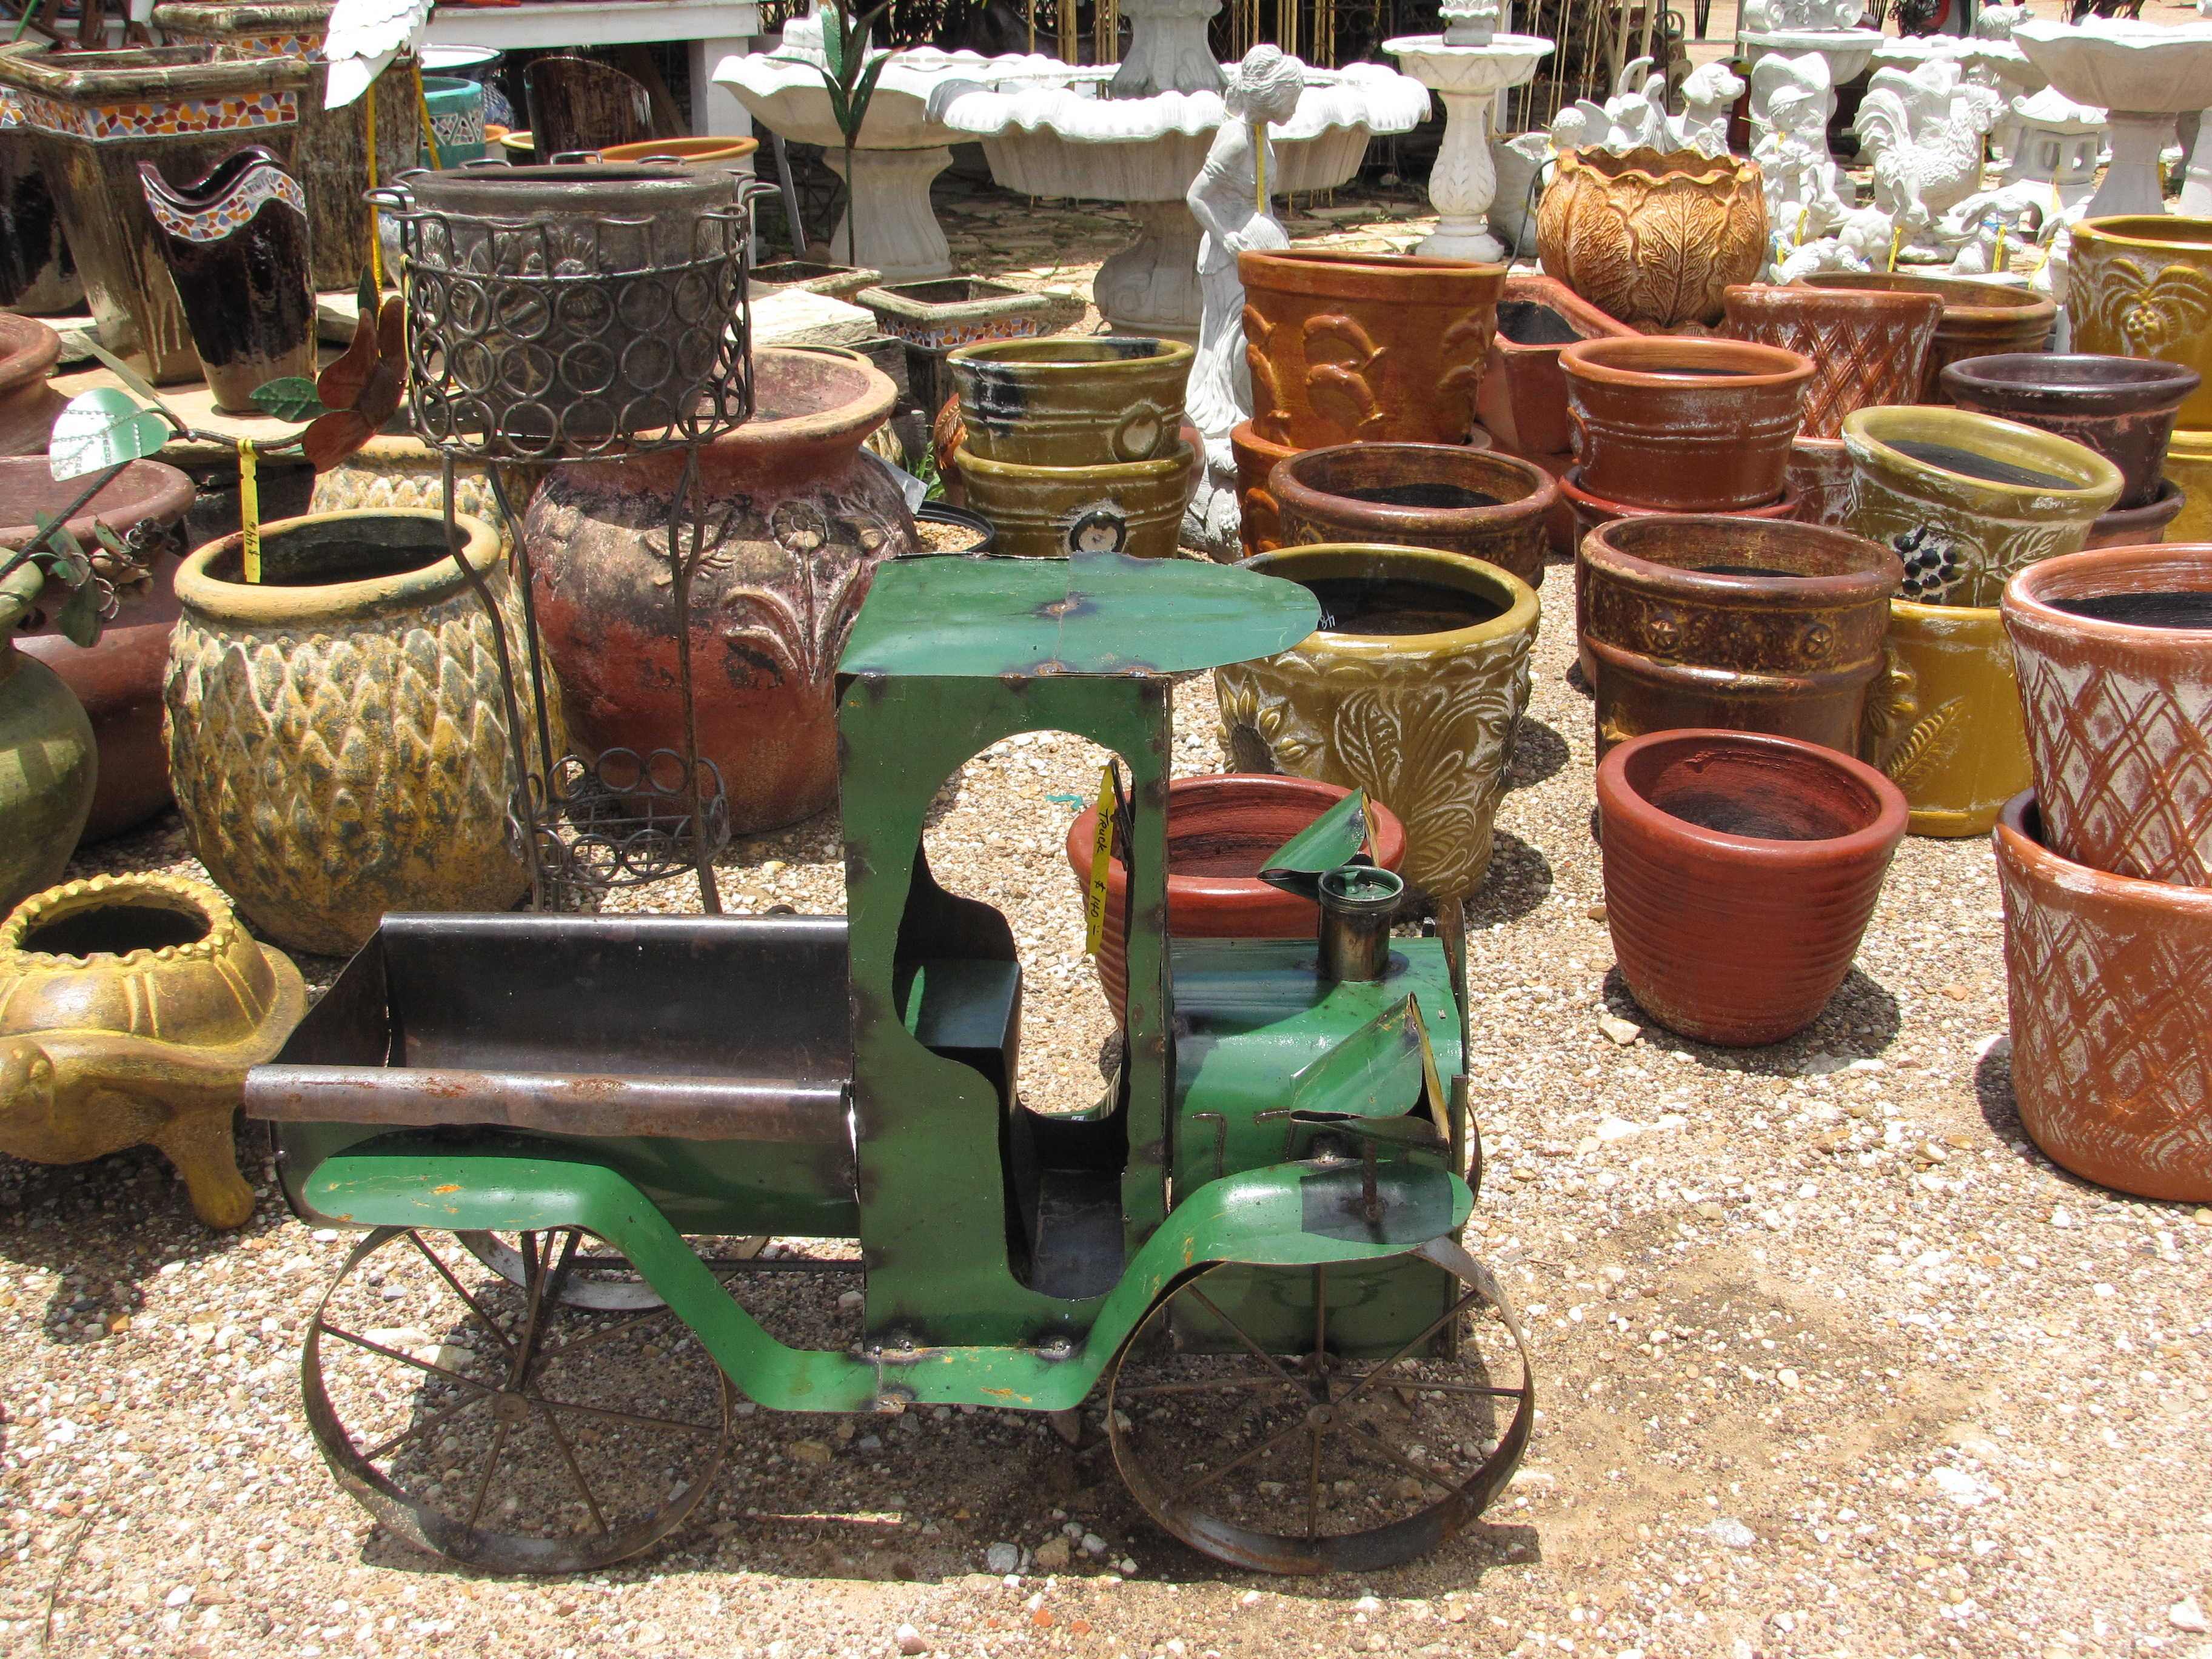 Many kinds of yard decor such as iron, cement and pottery at Madison Gardens Nursery, Spring, TX.